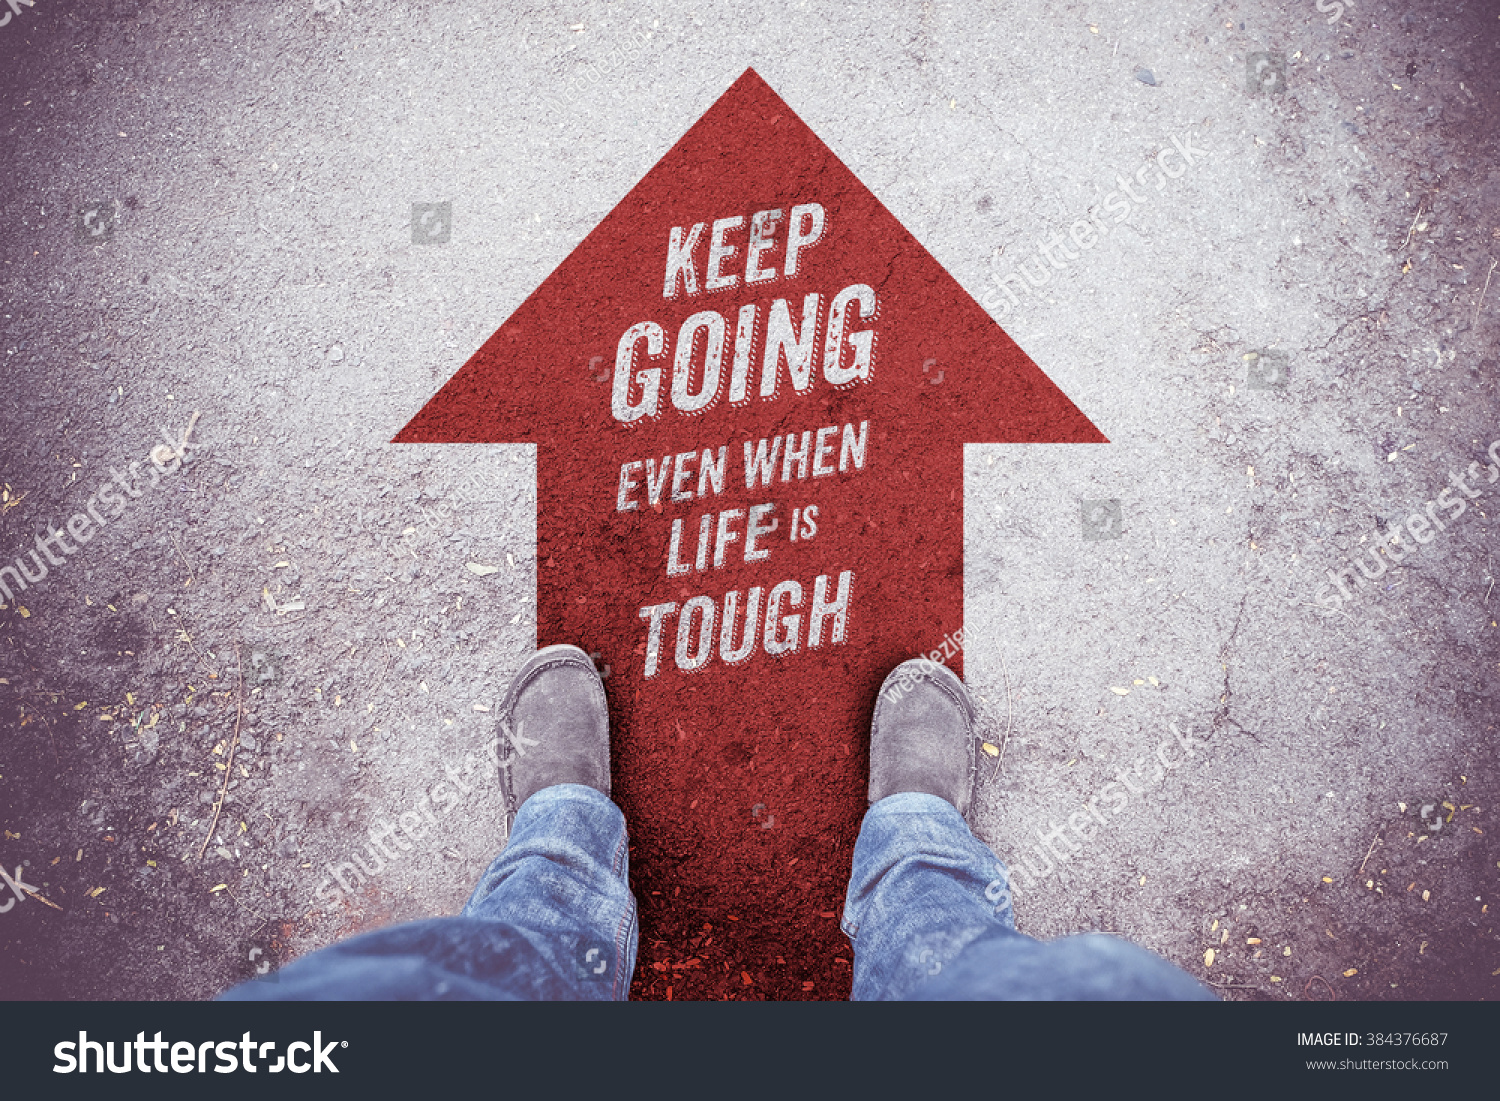 Arrow Quotes Life Inspiration Quote Keep Going Even When Stock Photo 384376687